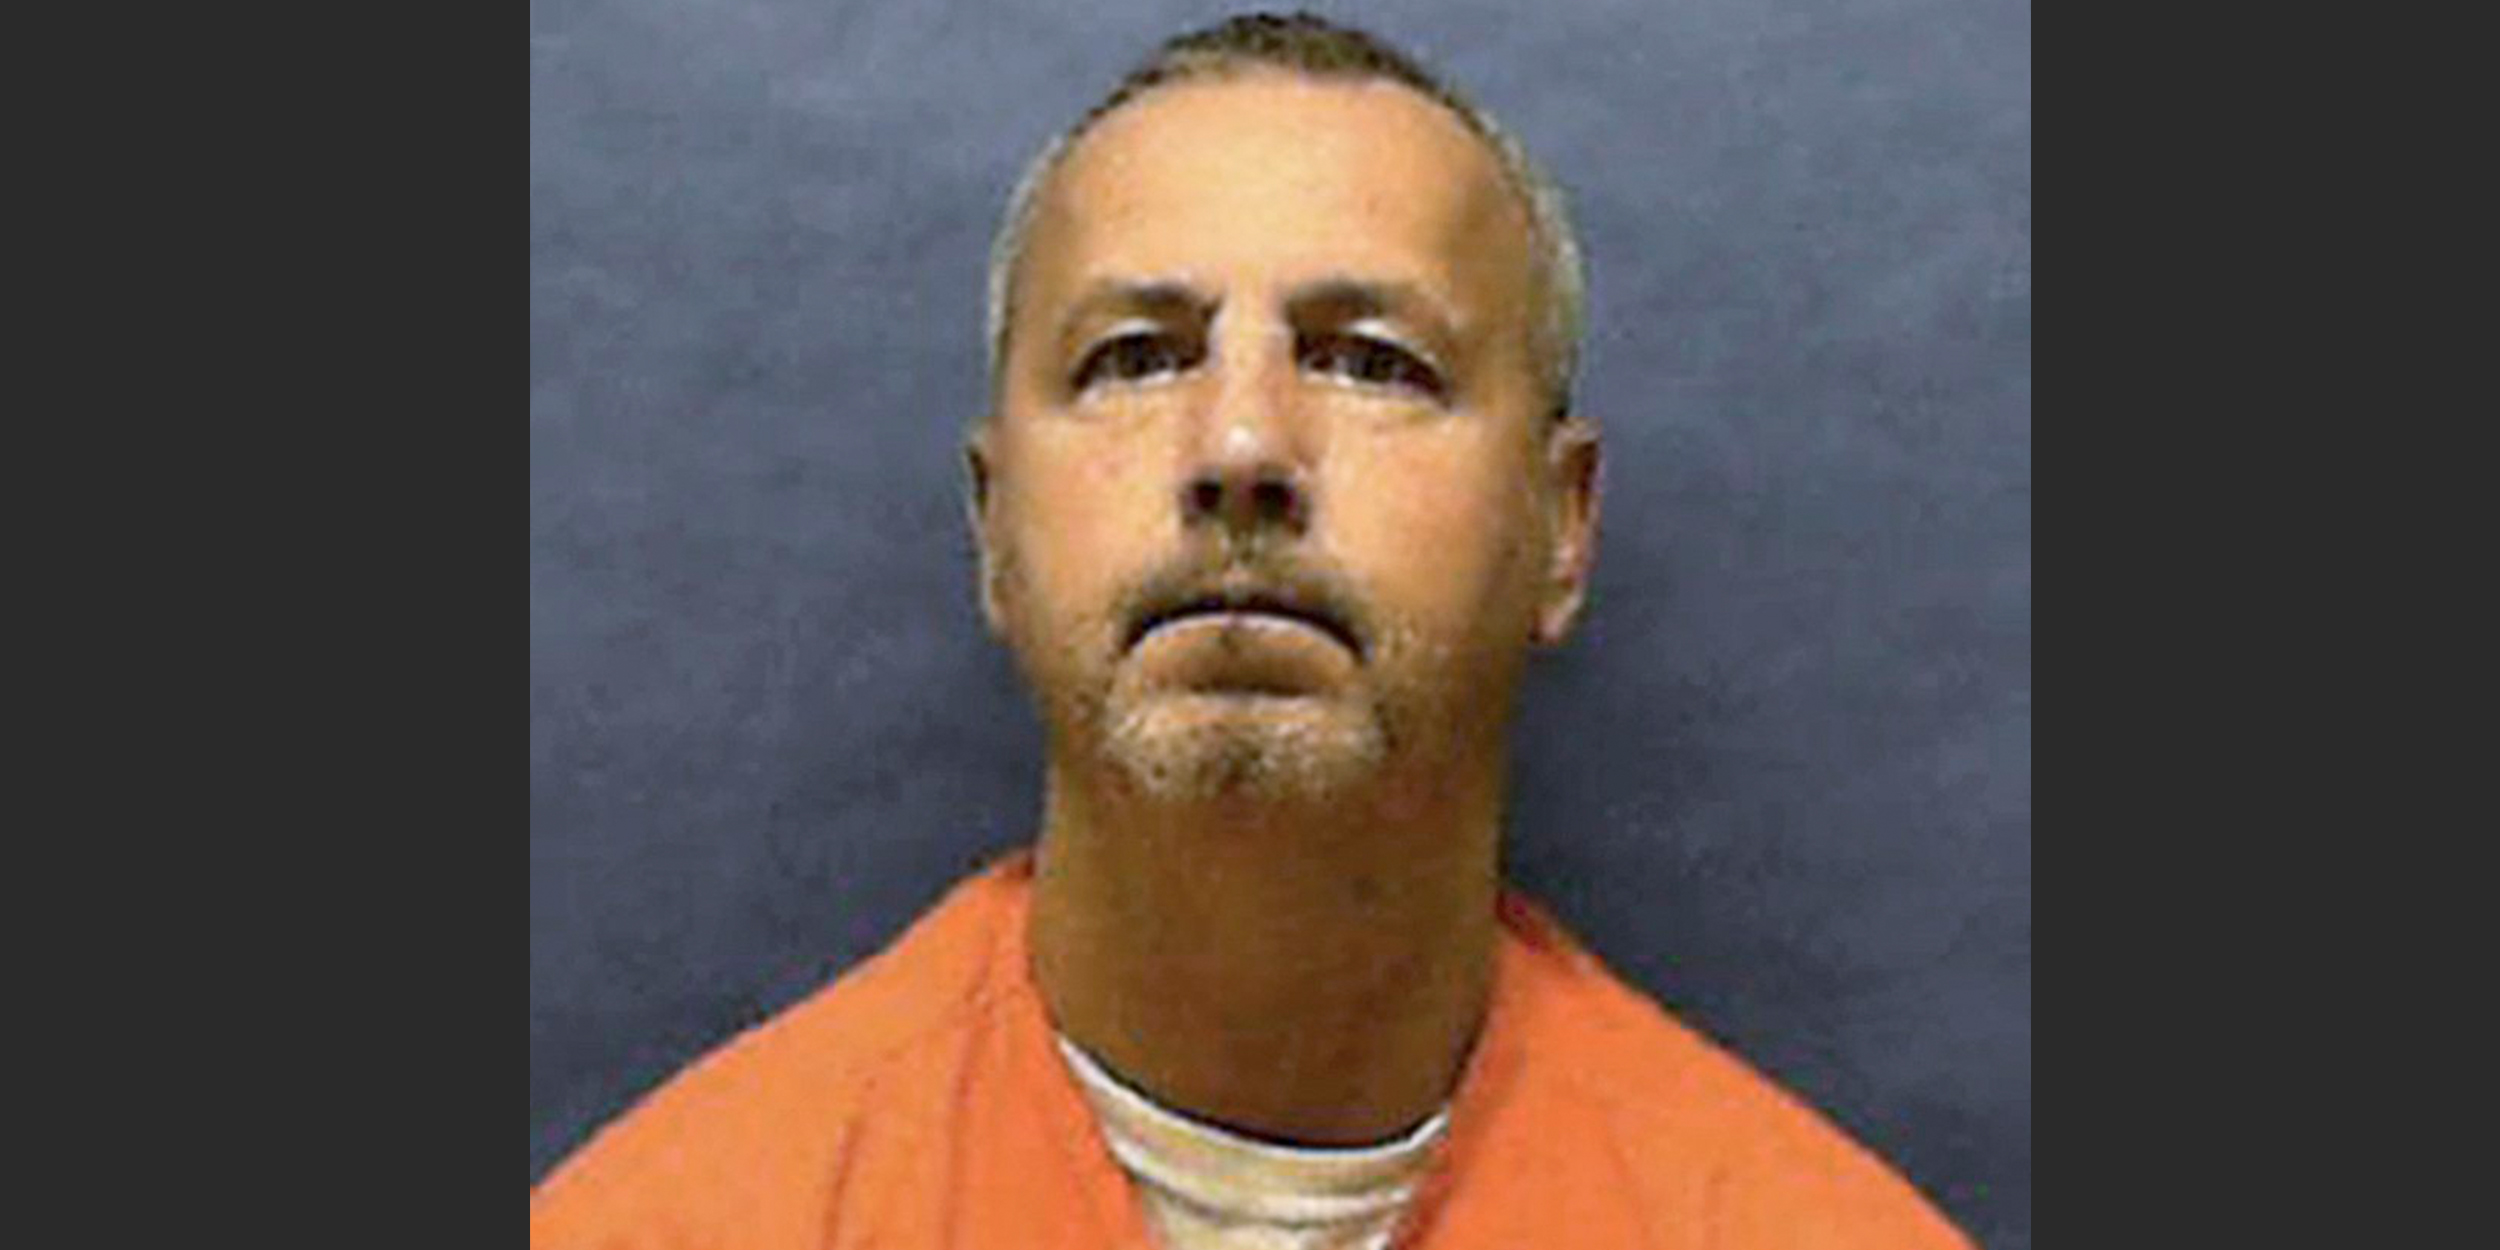 Serial killer who preyed on gay men, was dubbed 'I-95 killer' is executed in Florida